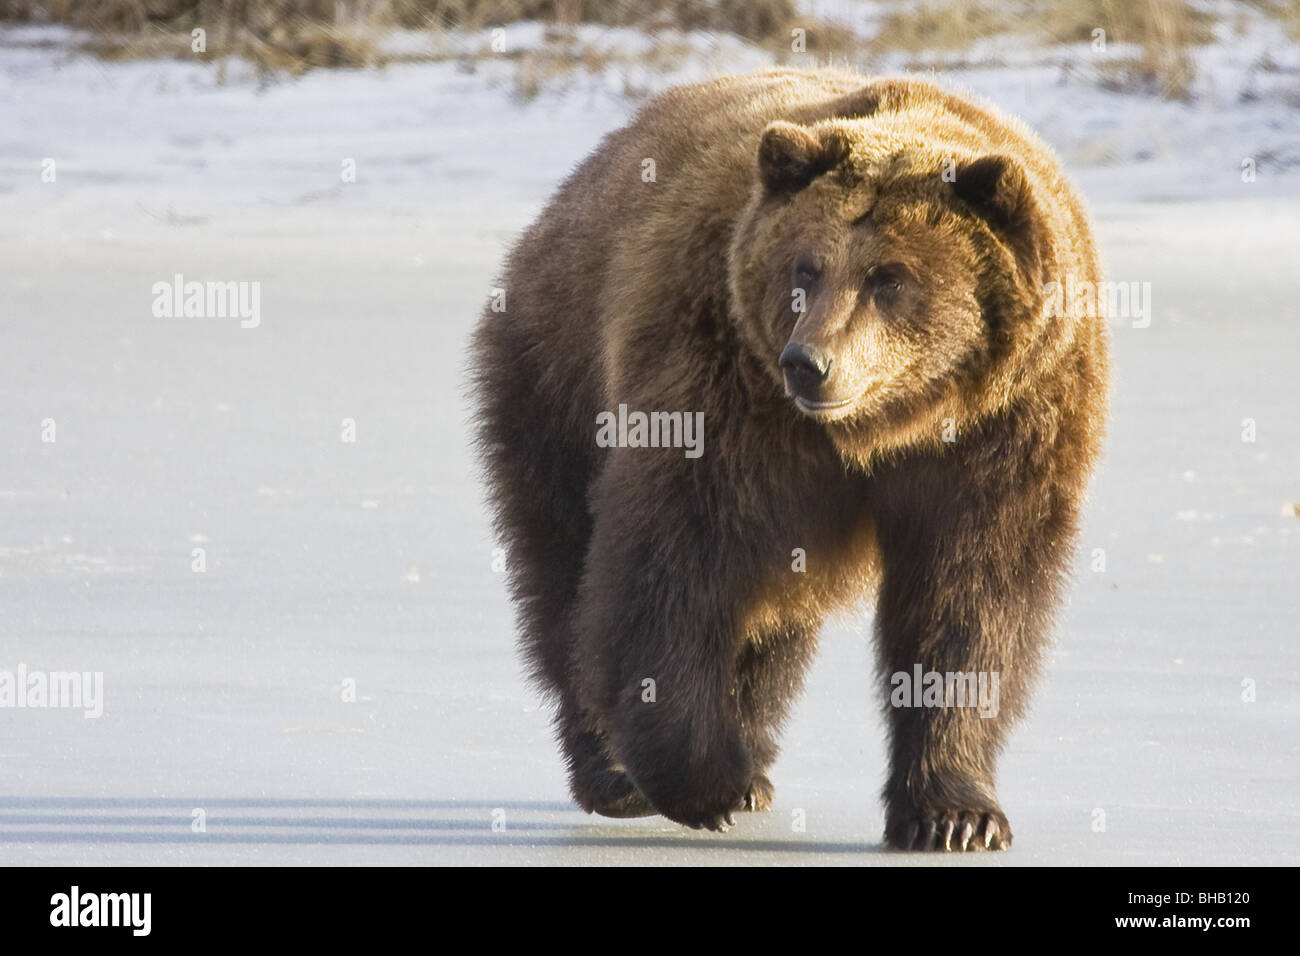 CAPTIVE Grizzly walking in snow At the Alaska Wildlife Conservation Centerm Southcentral Alaska Stock Photo